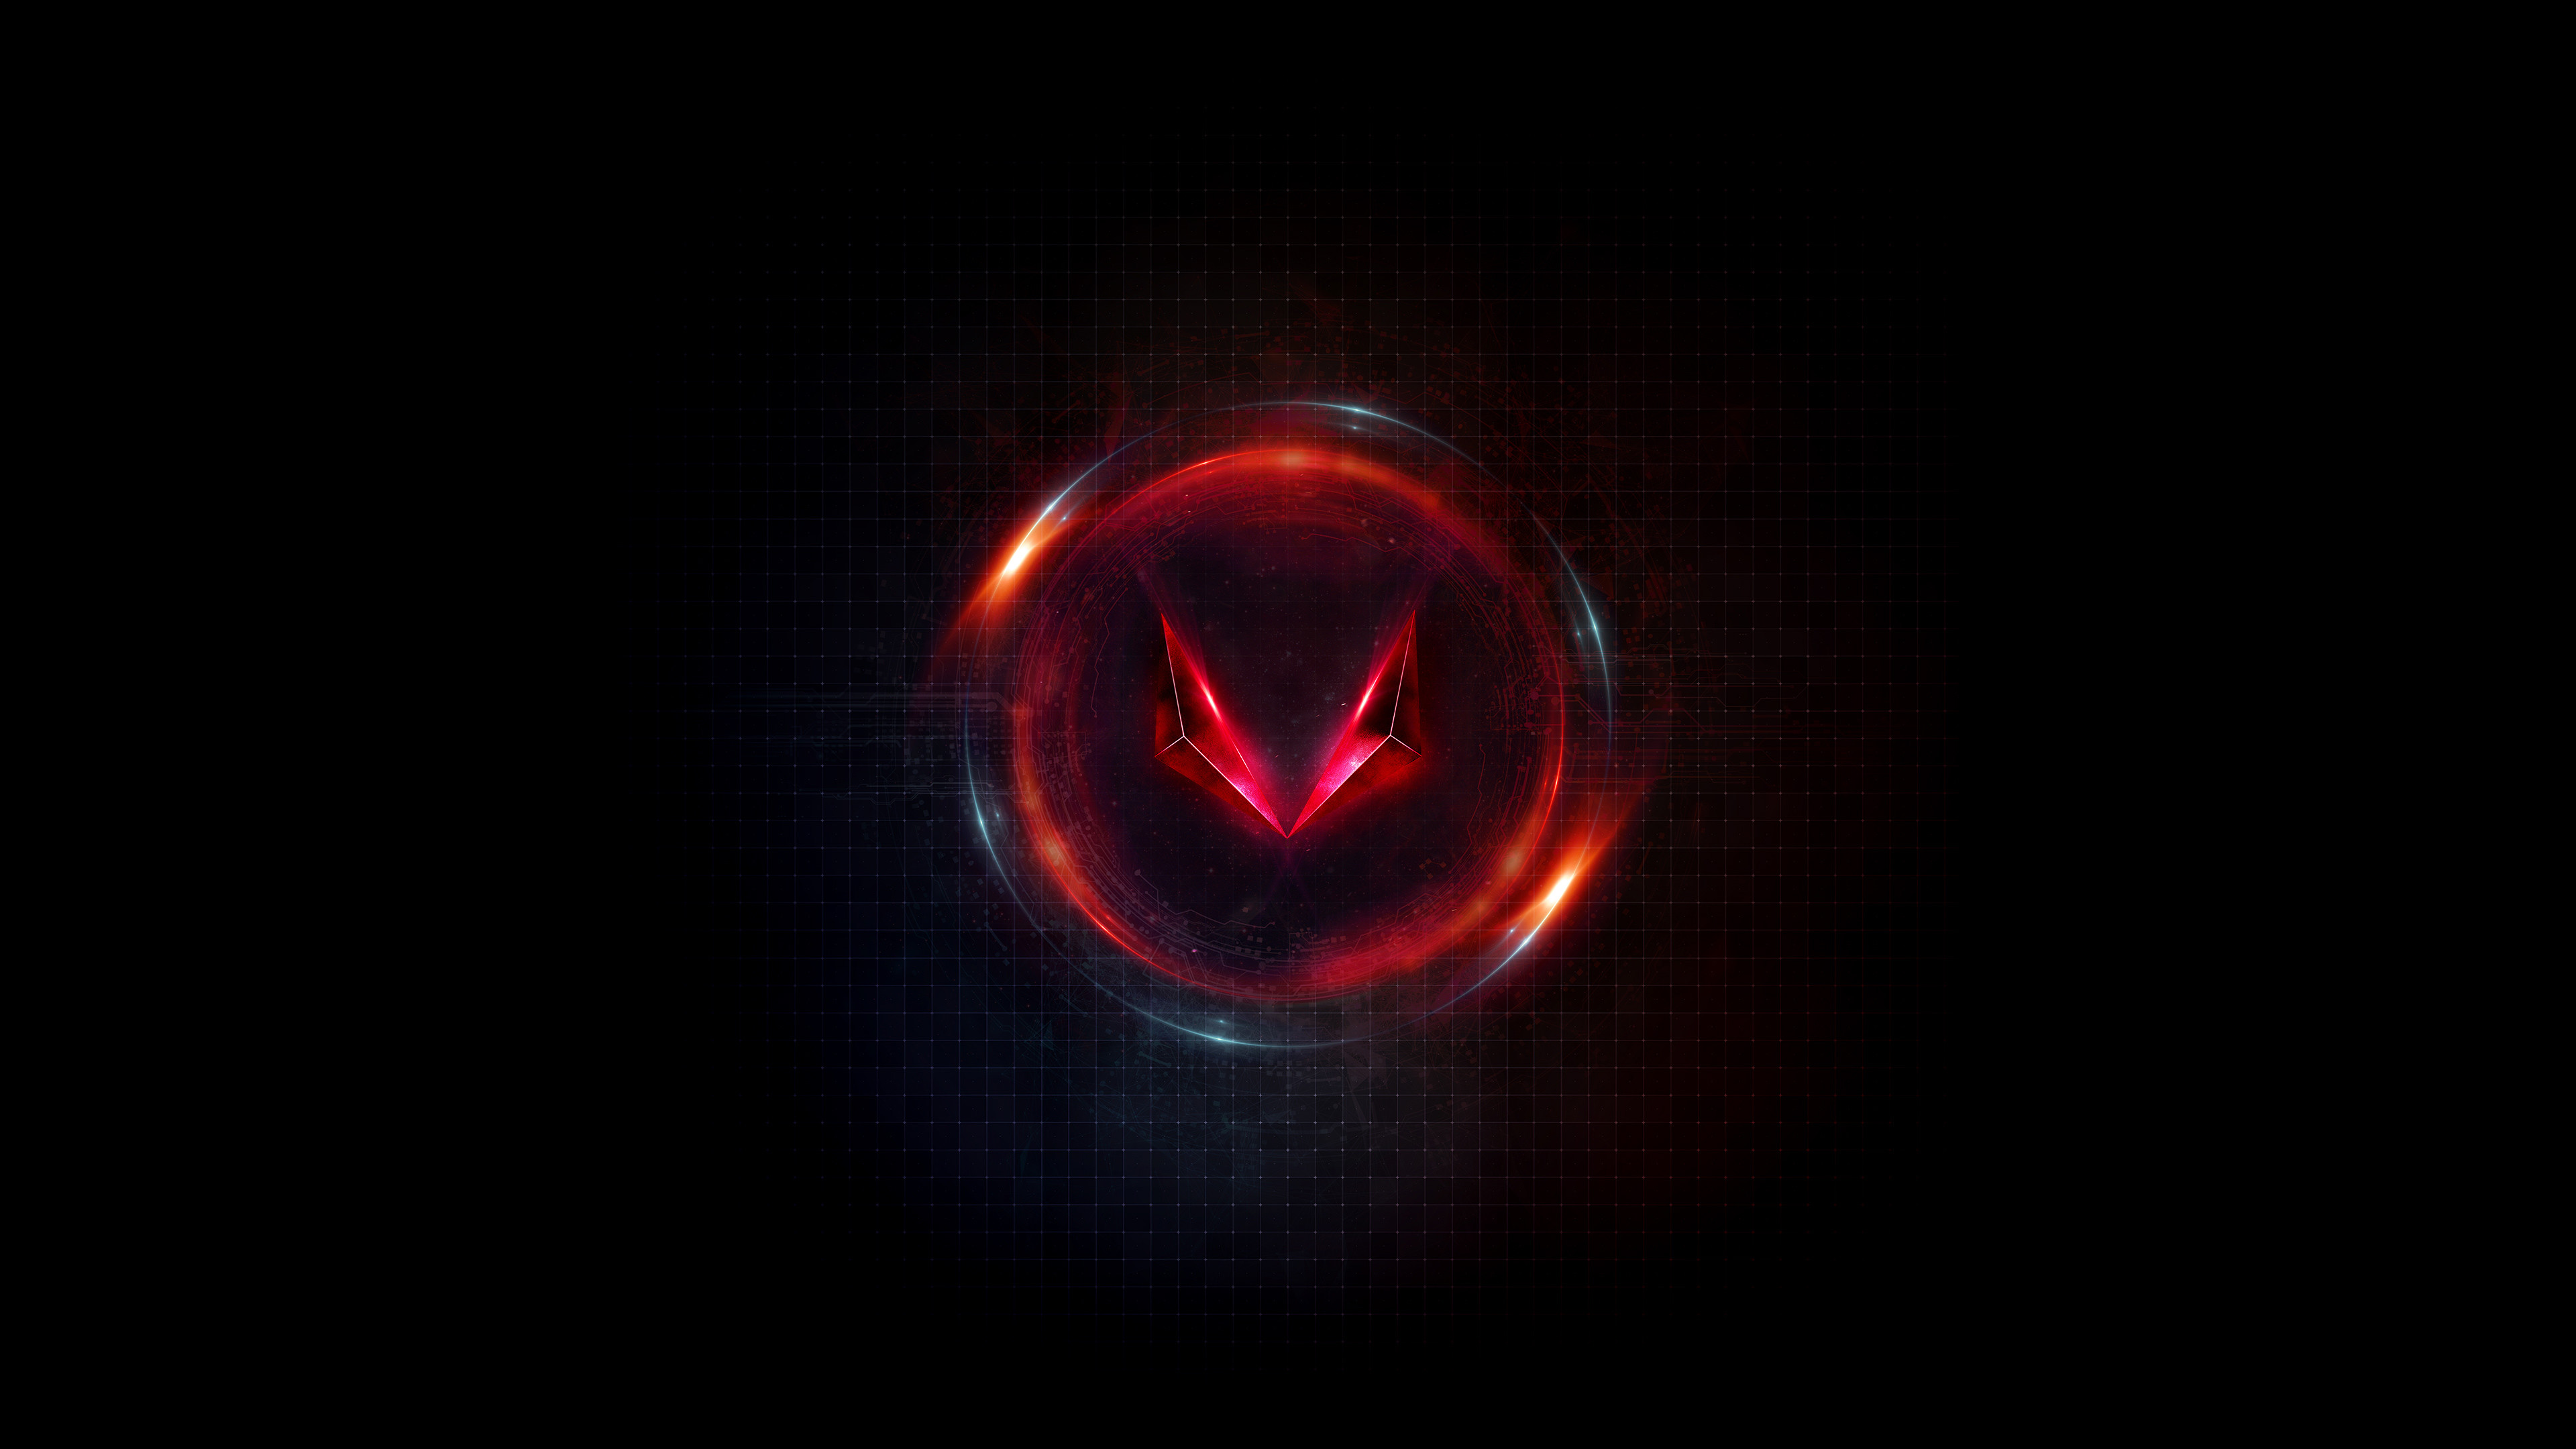 Amd 4k Wallpaper 75 Images